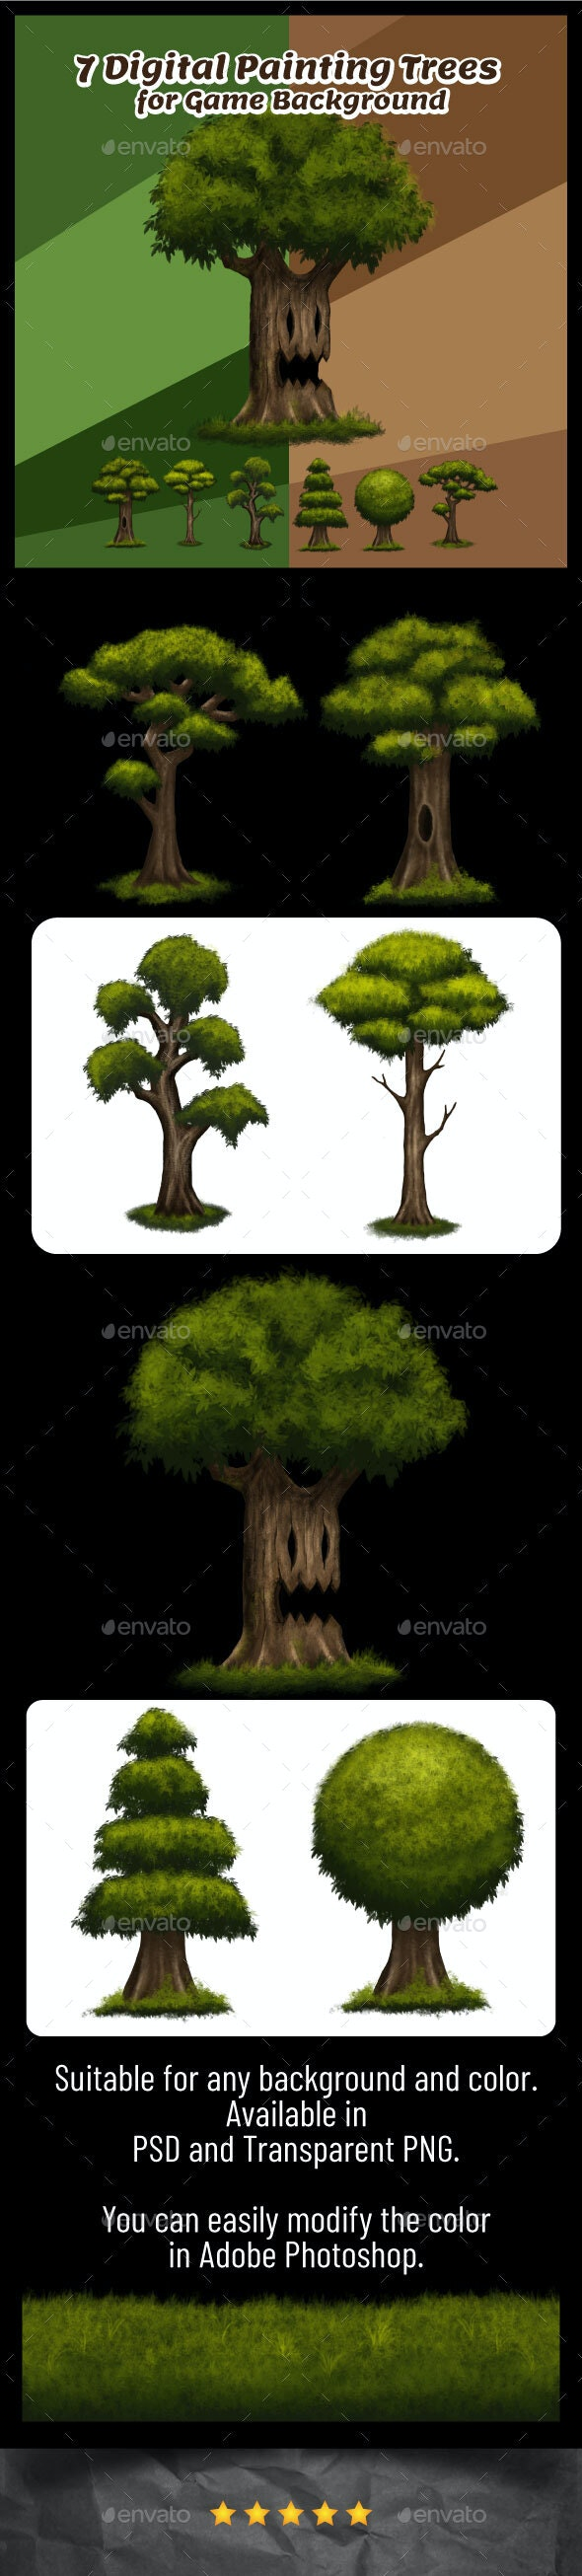 Digital Painting Forest Tree Game Asset - Miscellaneous Game Assets